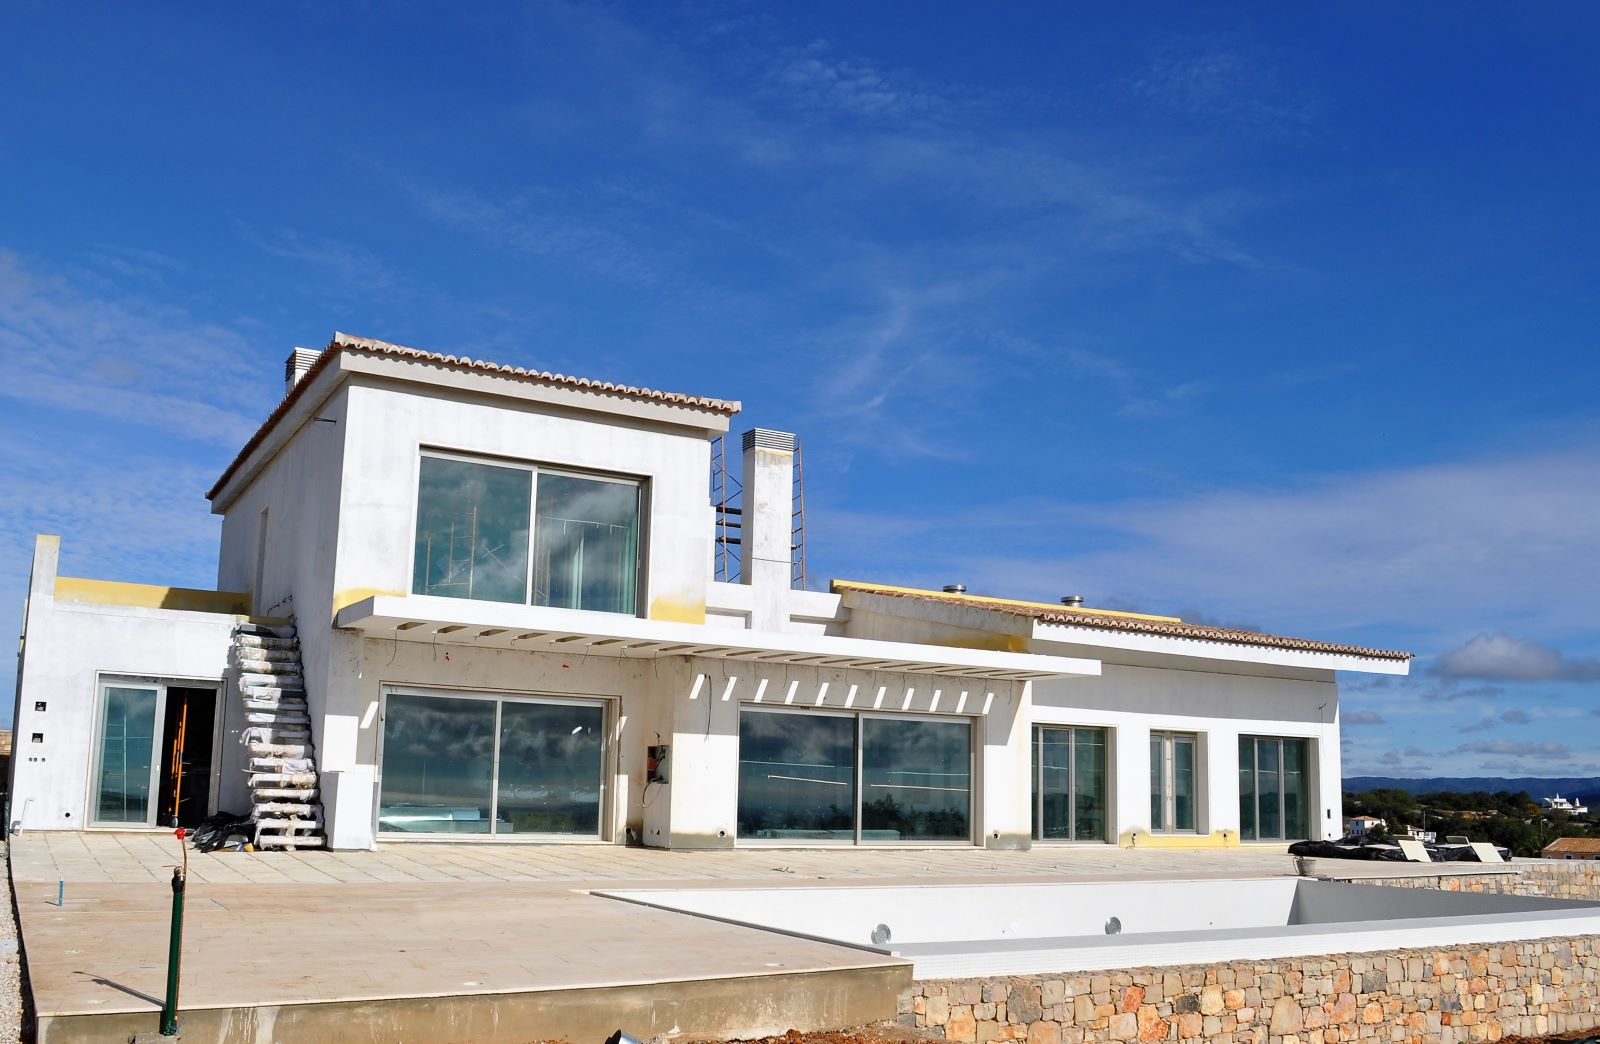 New Villa with 5 bedrooms with sea view near Loulé